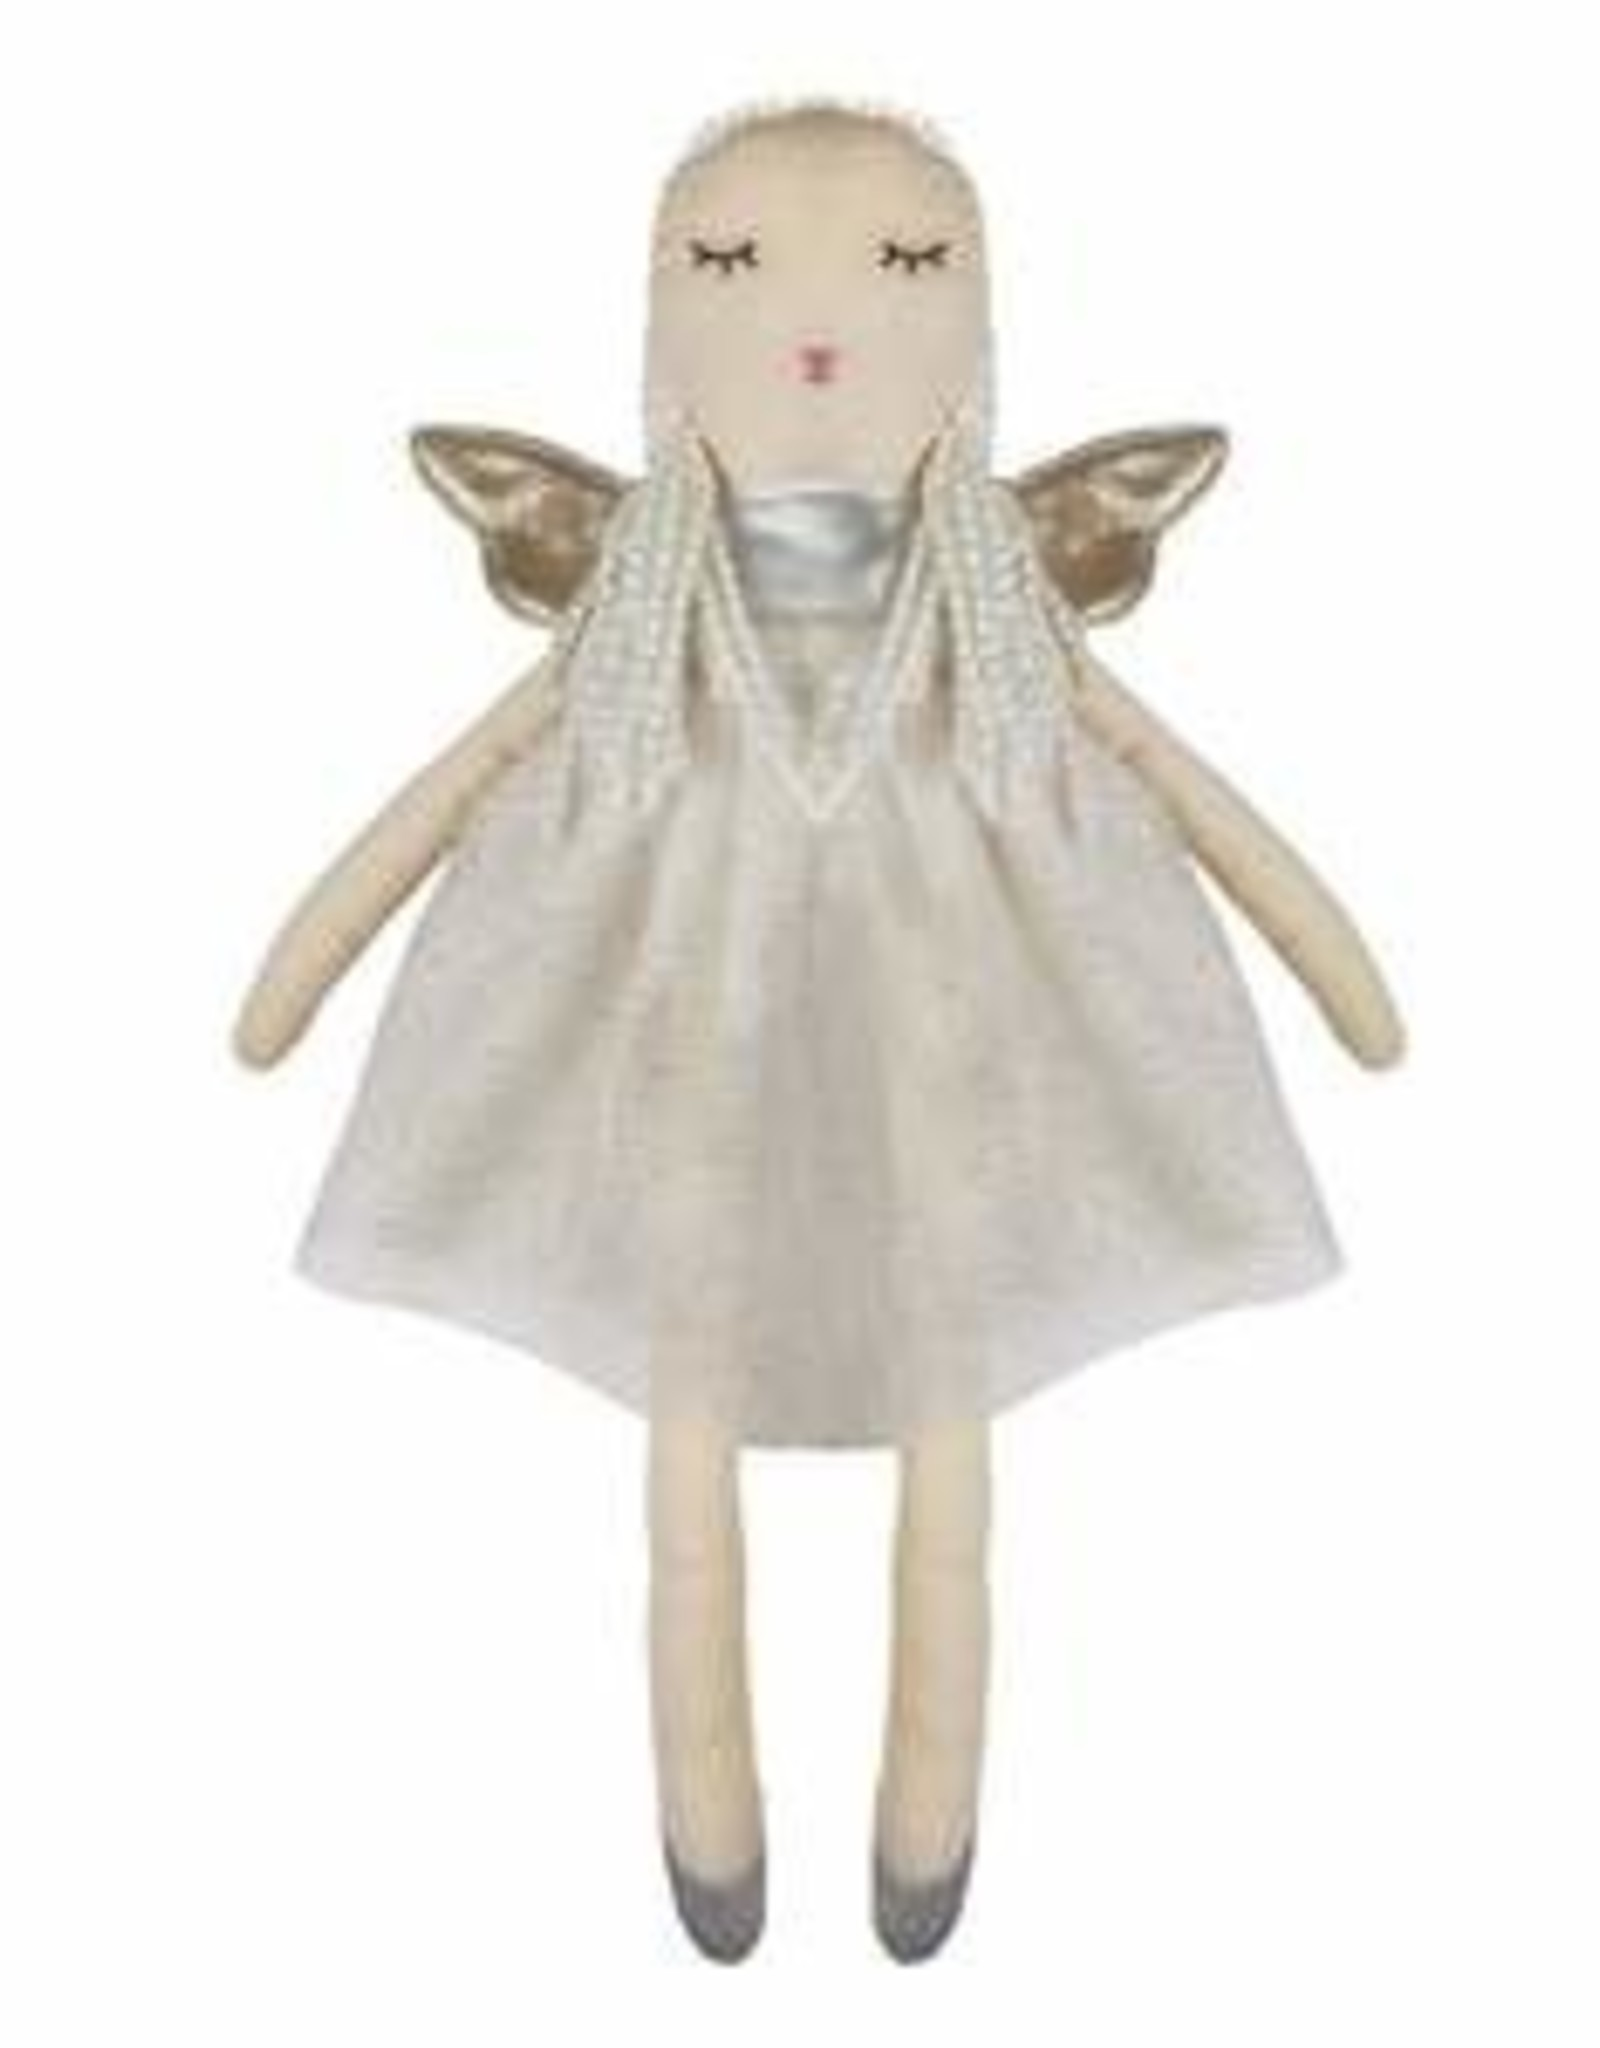 Creative Education Doll - Charlotte the Fairy 12""